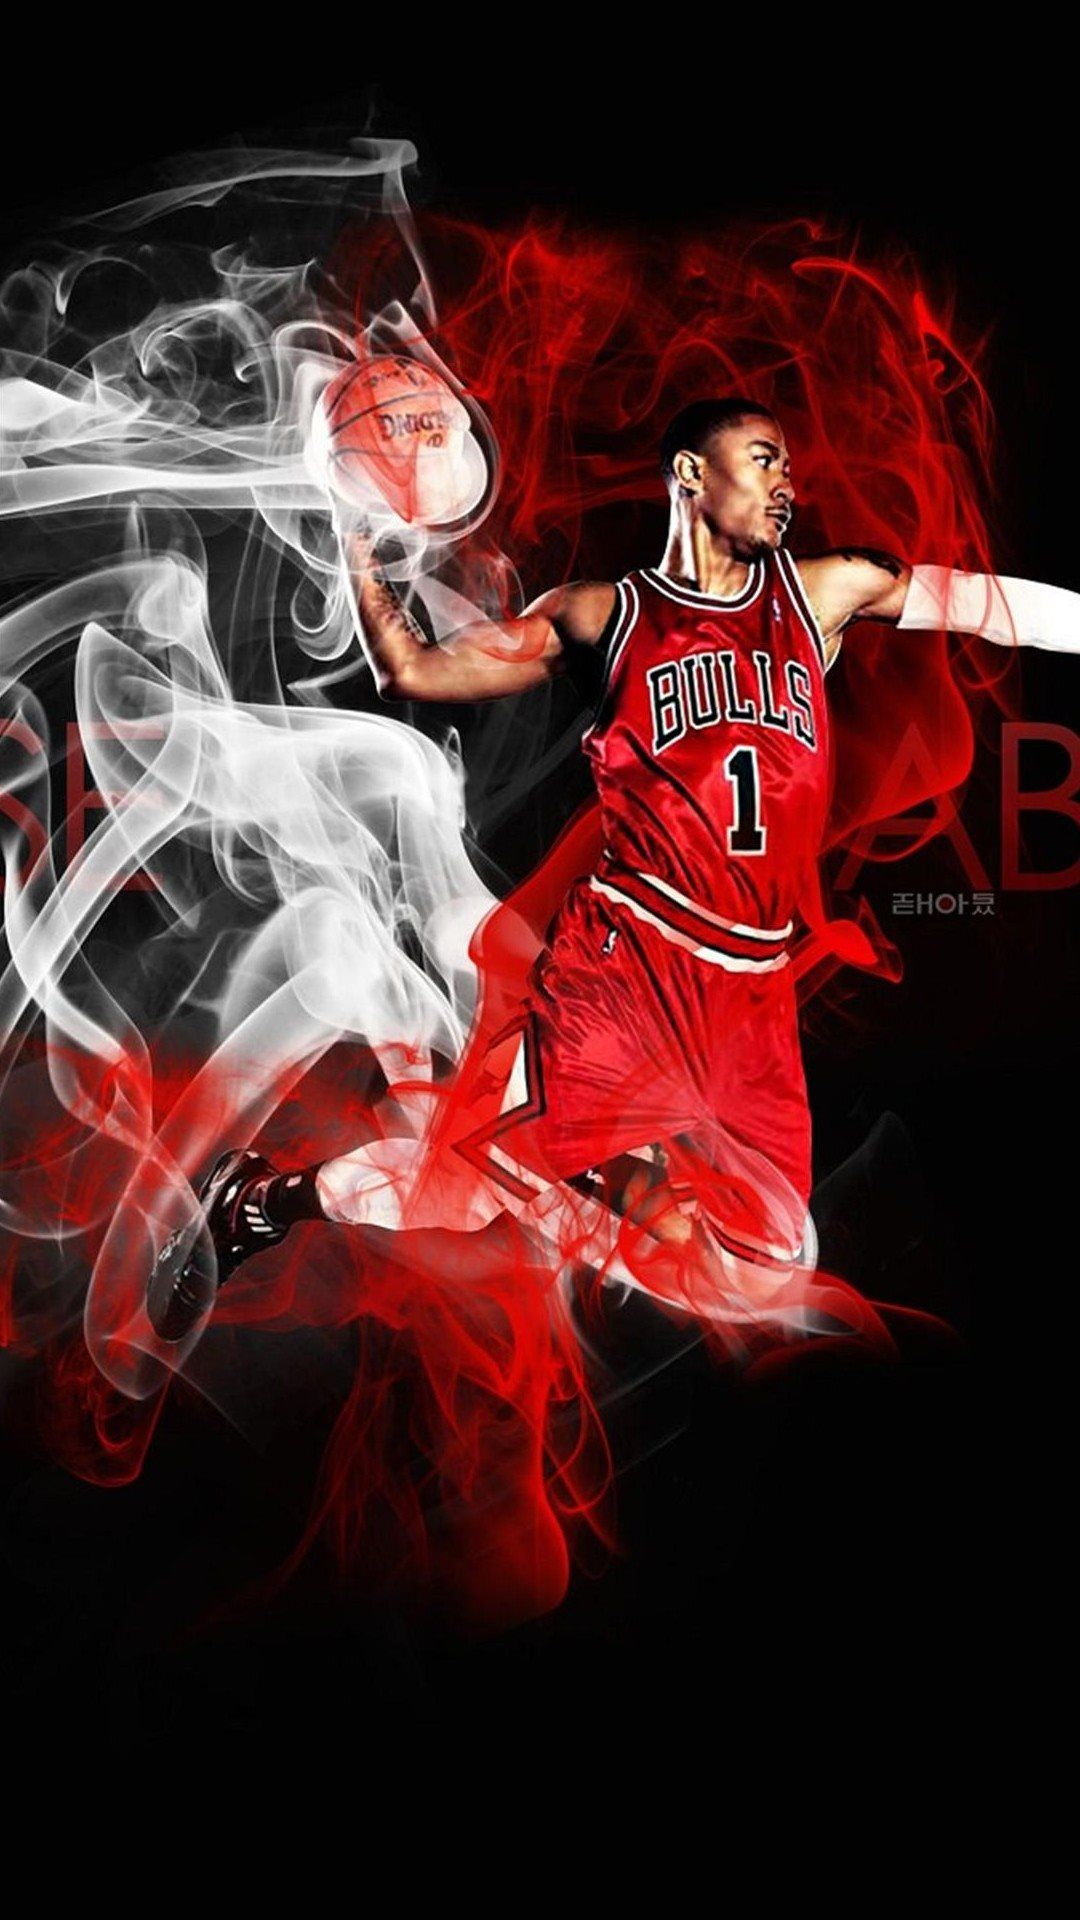 Cartoon Nba Wallpaper Iphone In 2020 Derrick Rose Wallpapers Nba Wallpapers Derrick Rose